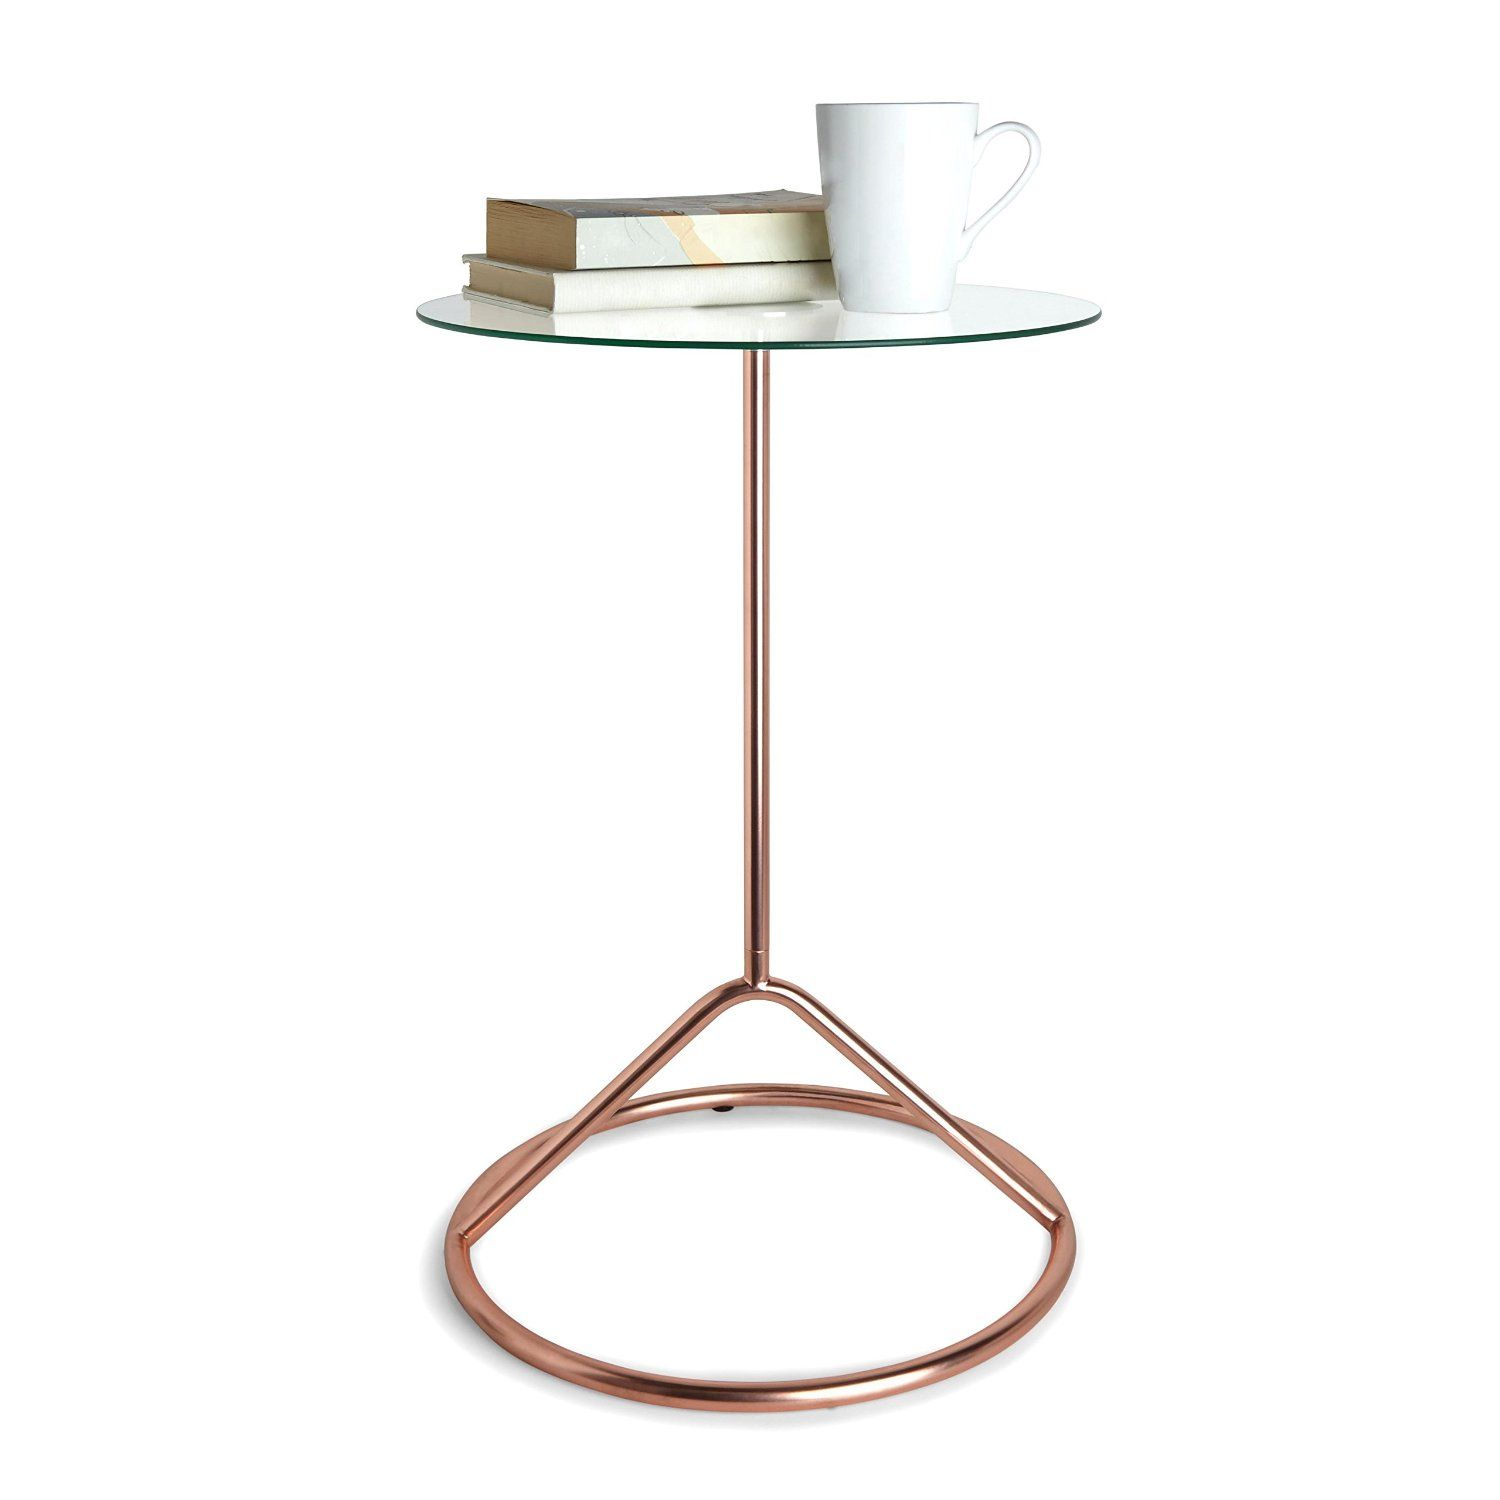 Amazon.com: Umbra Loop Side Table, Copper: Home & Kitchen | Curio ...